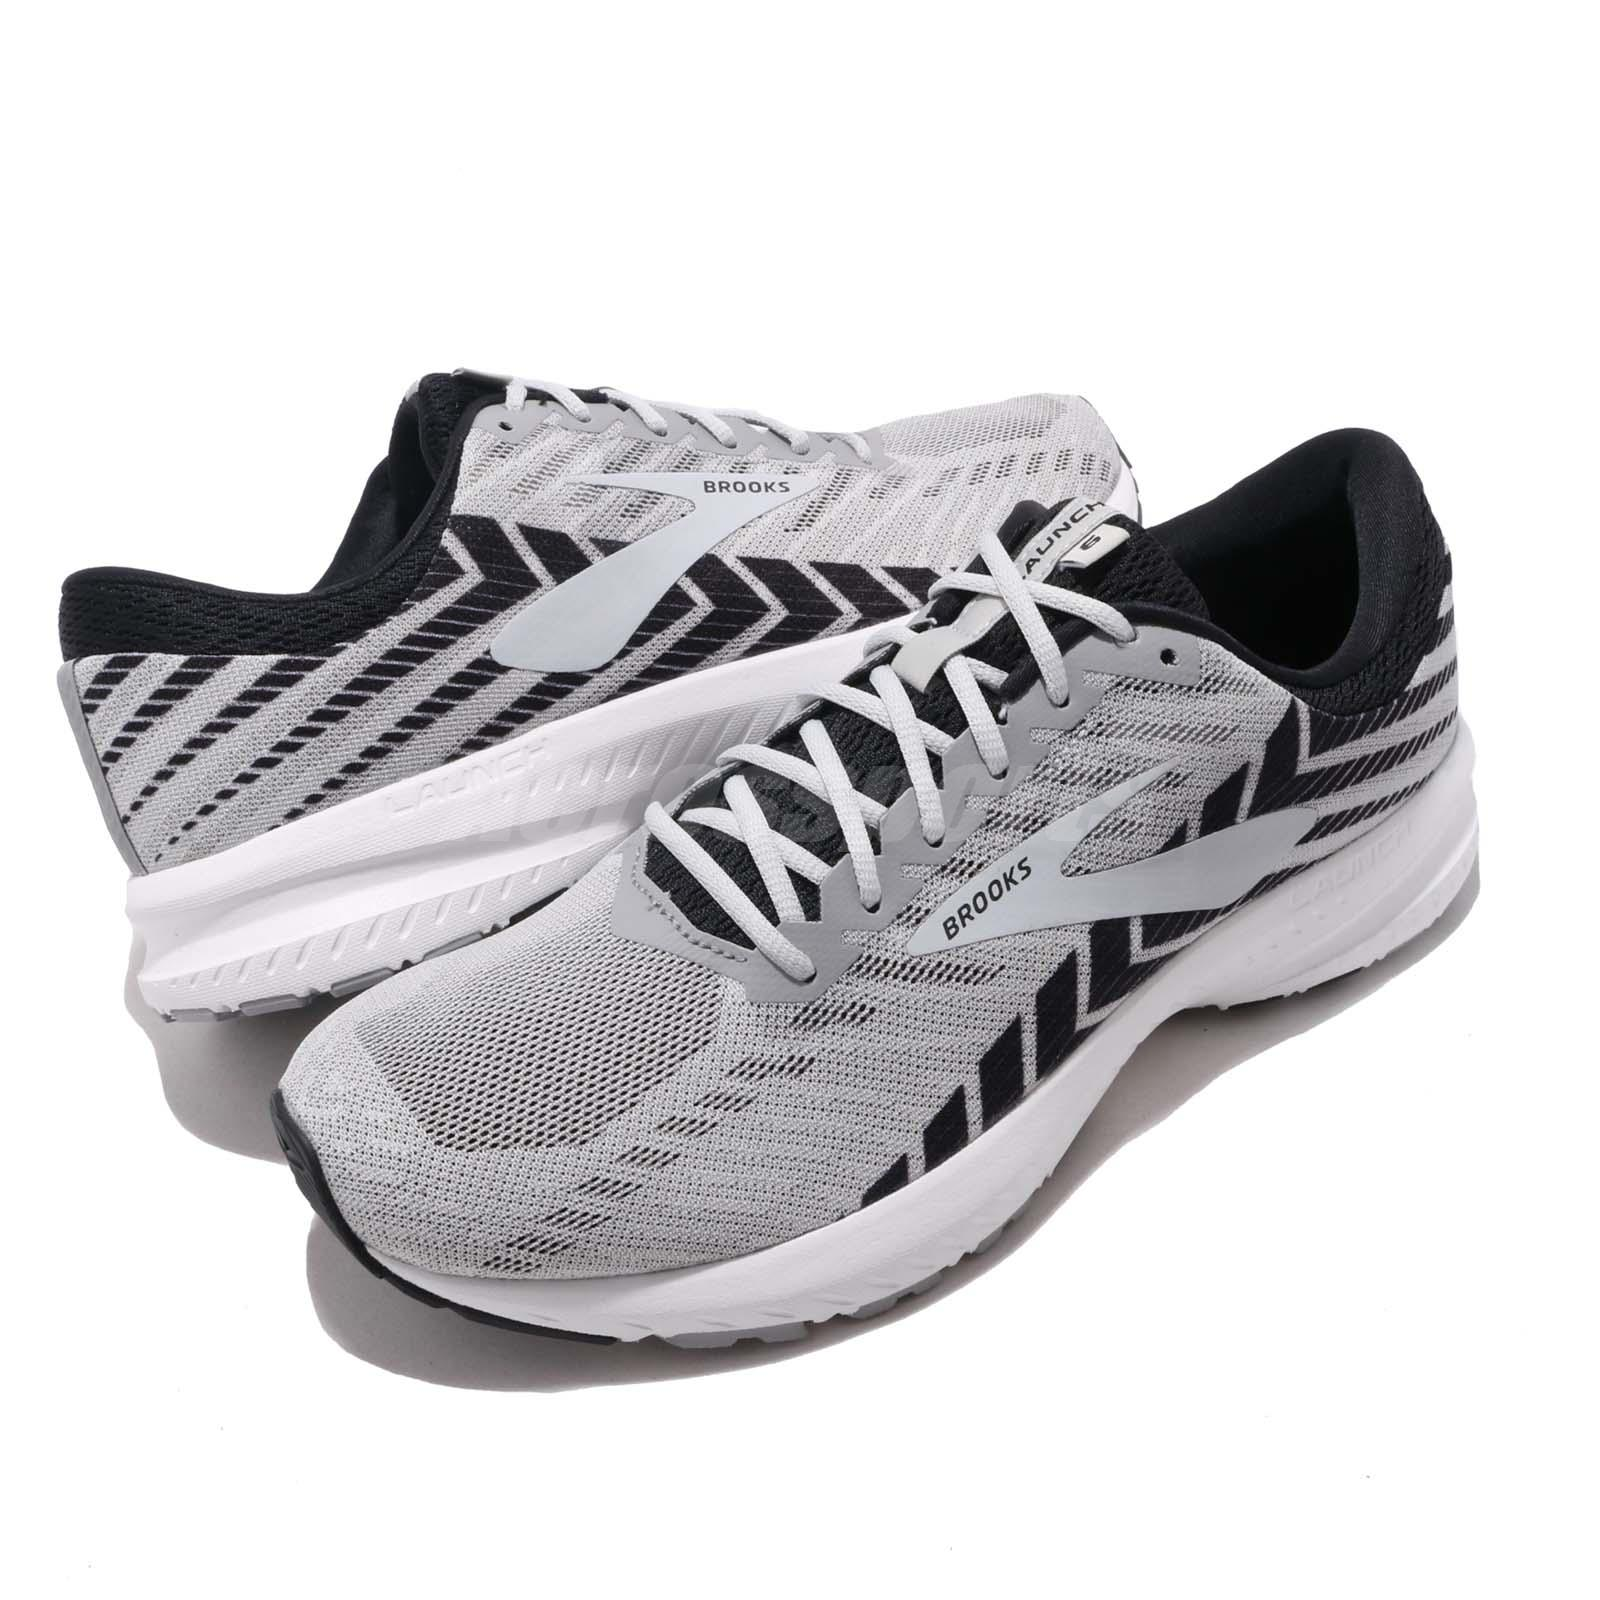 Alloy Black Grey Men Running Shoes